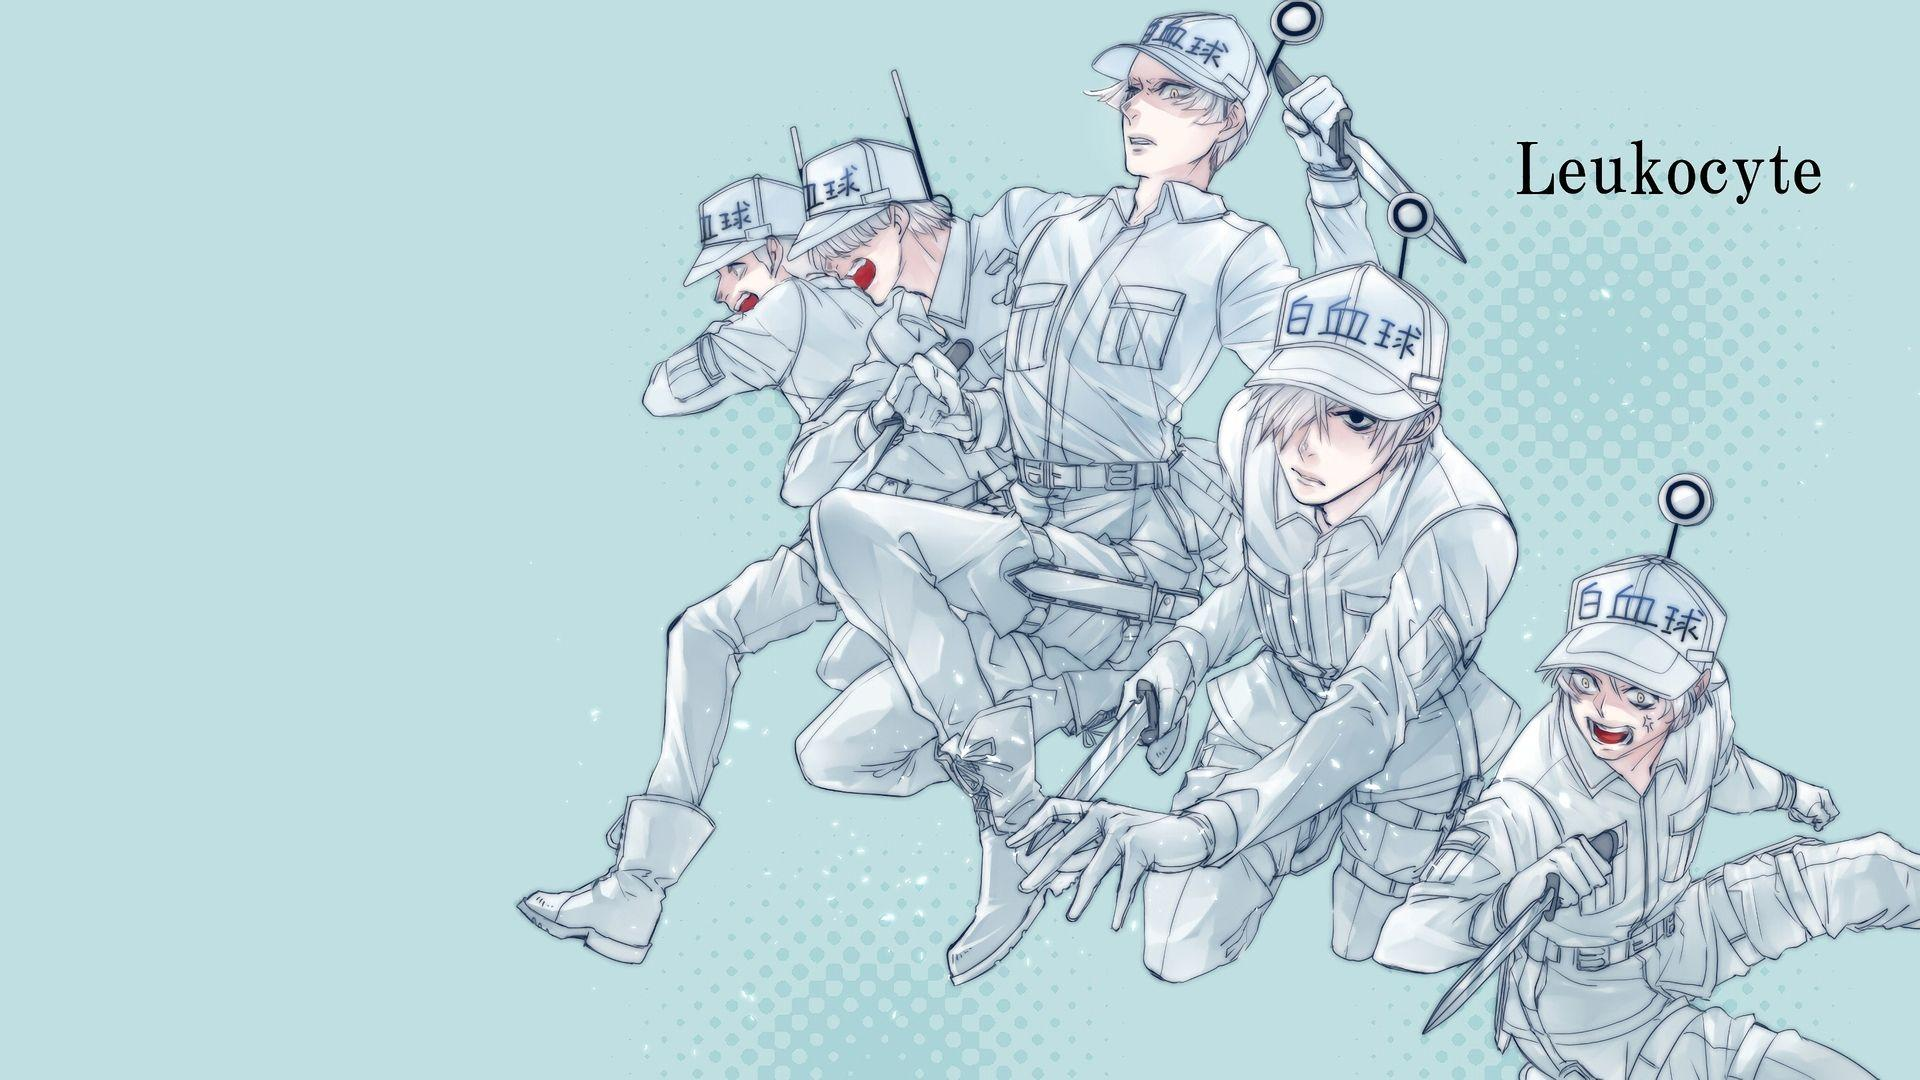 Cells at Work! HD Wallpapers